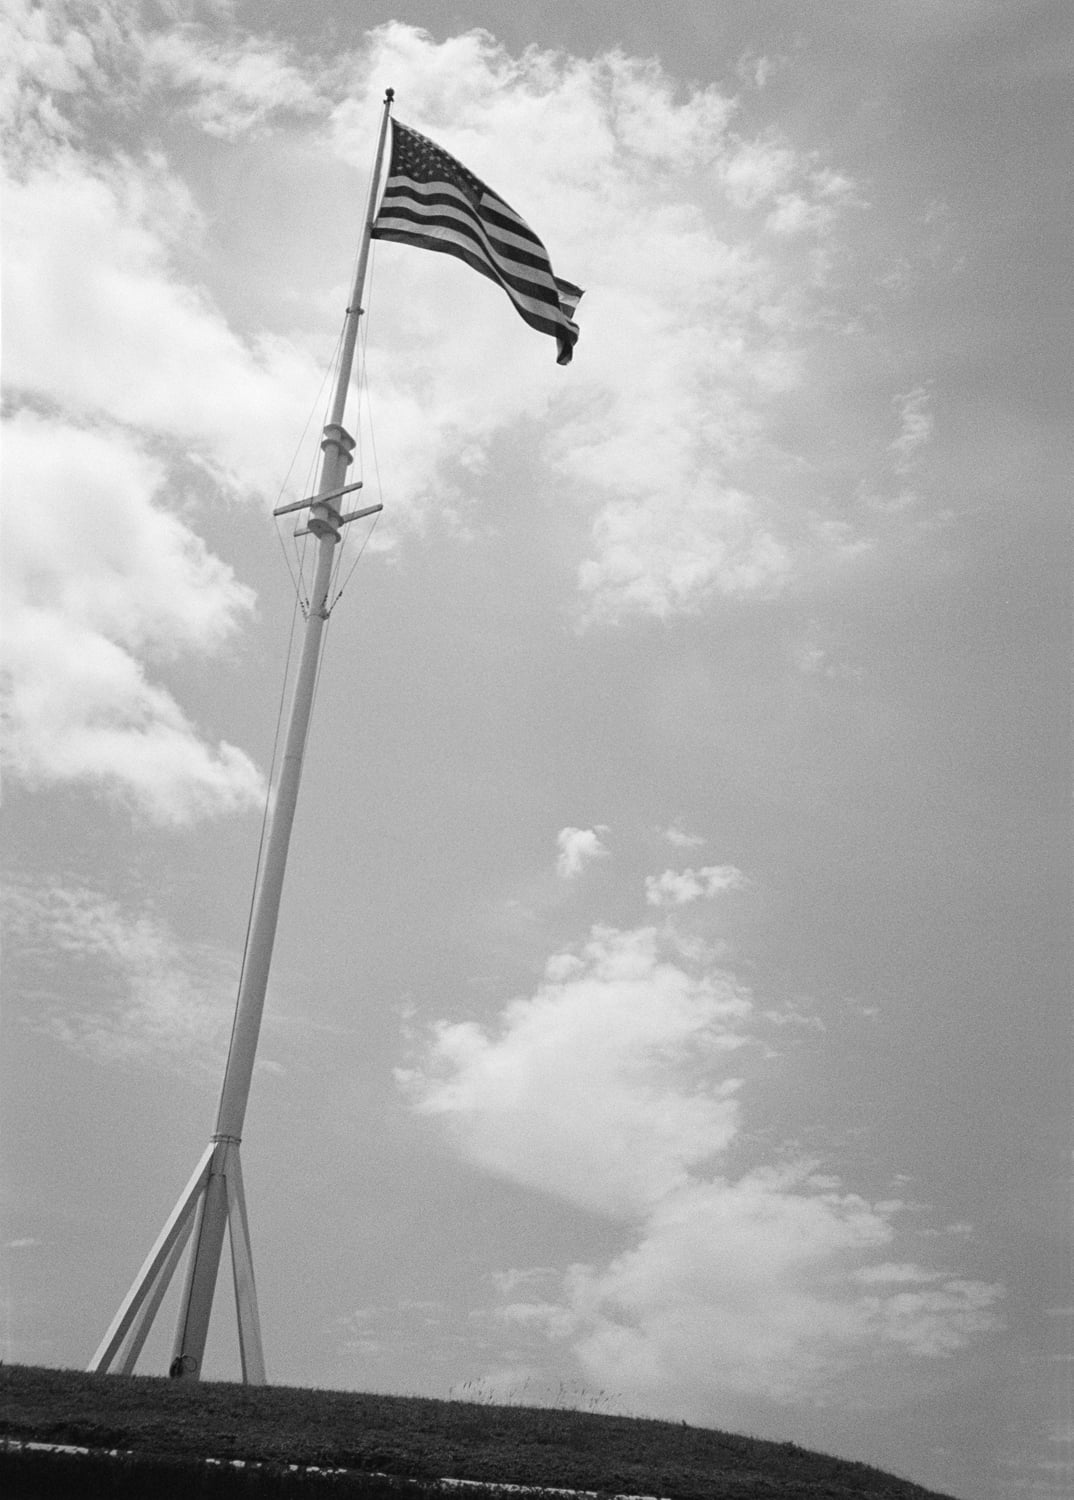 The flag at Fort Macon. 2015.